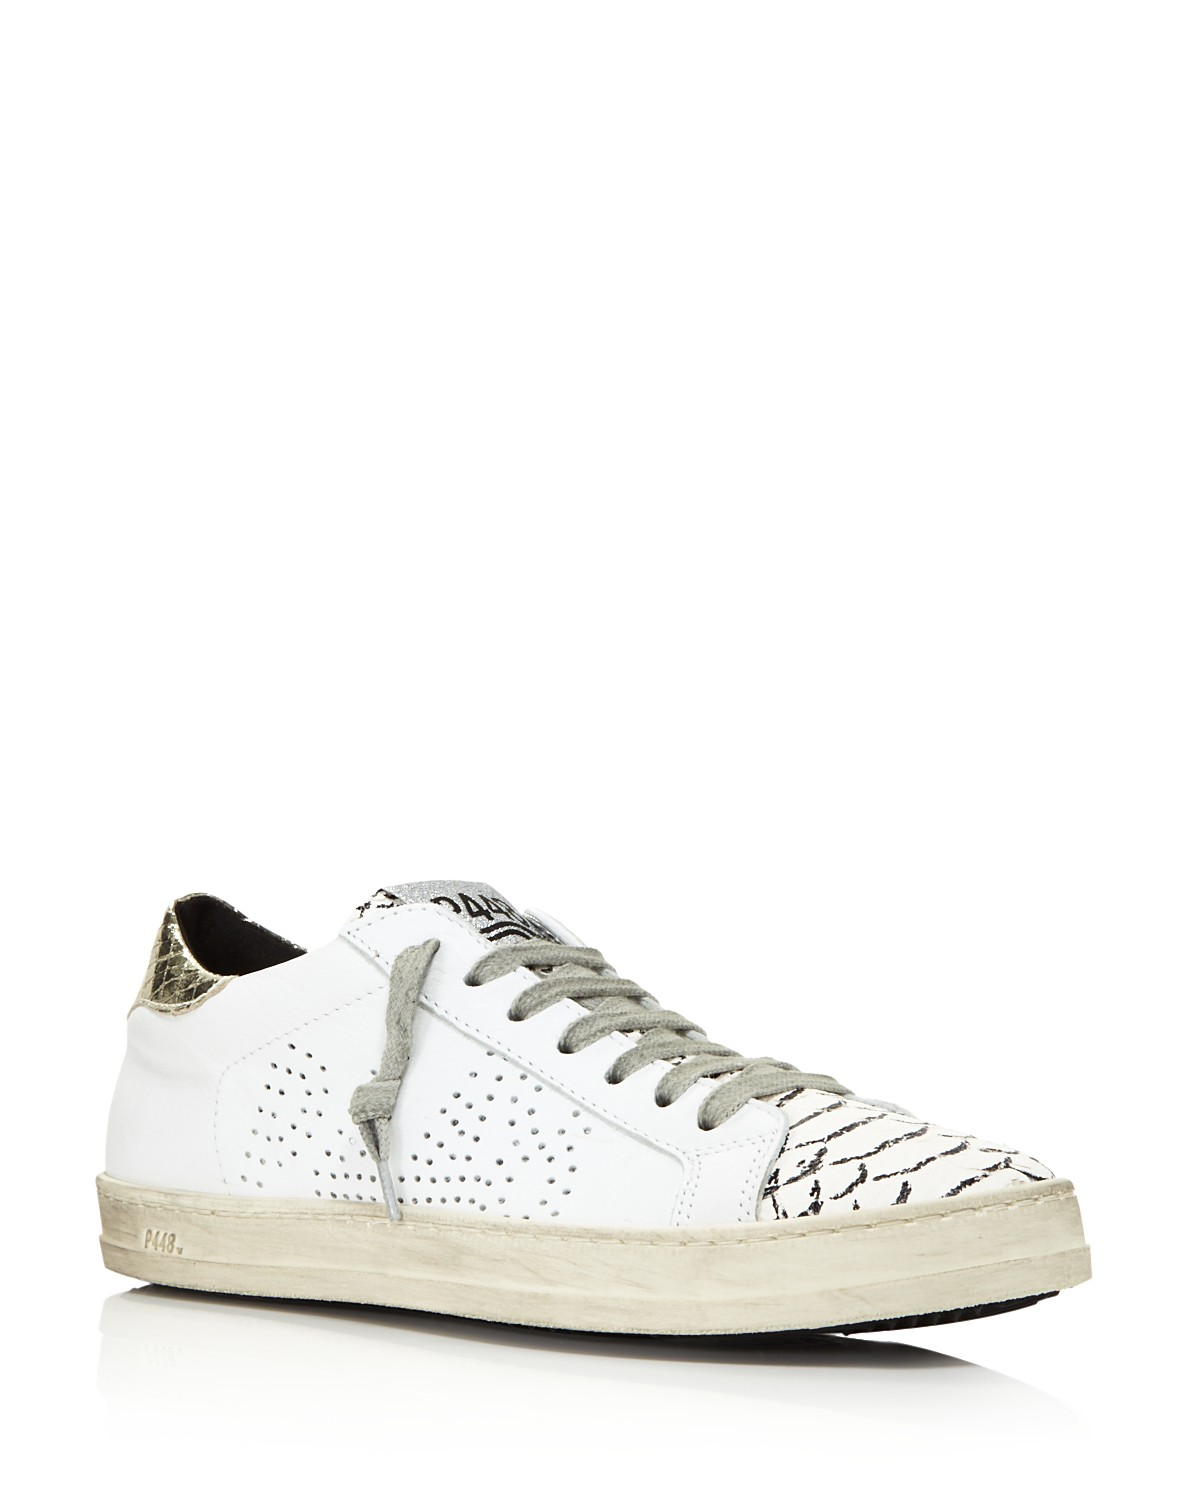 P448 Women's John Perforated Leather & Snake Print Lace Up Sneakers Free Shipping Looking For Great Deals Sale Online YAB0xVuMEC